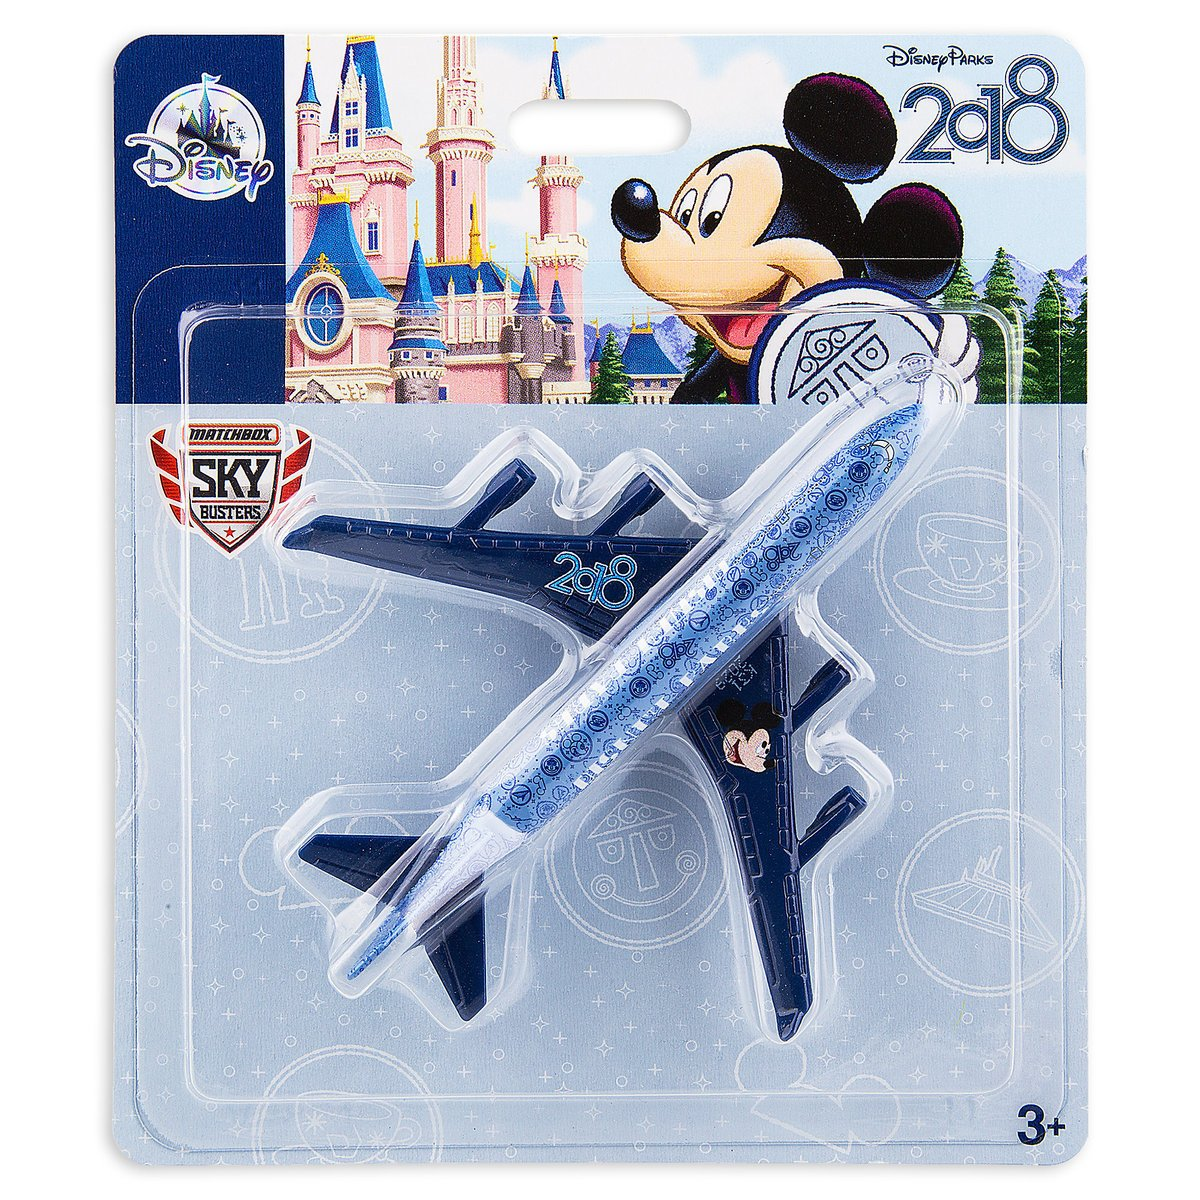 Disney Parks 2018 Walt Disney World Mickey Matchbox Model Plane New Sealed